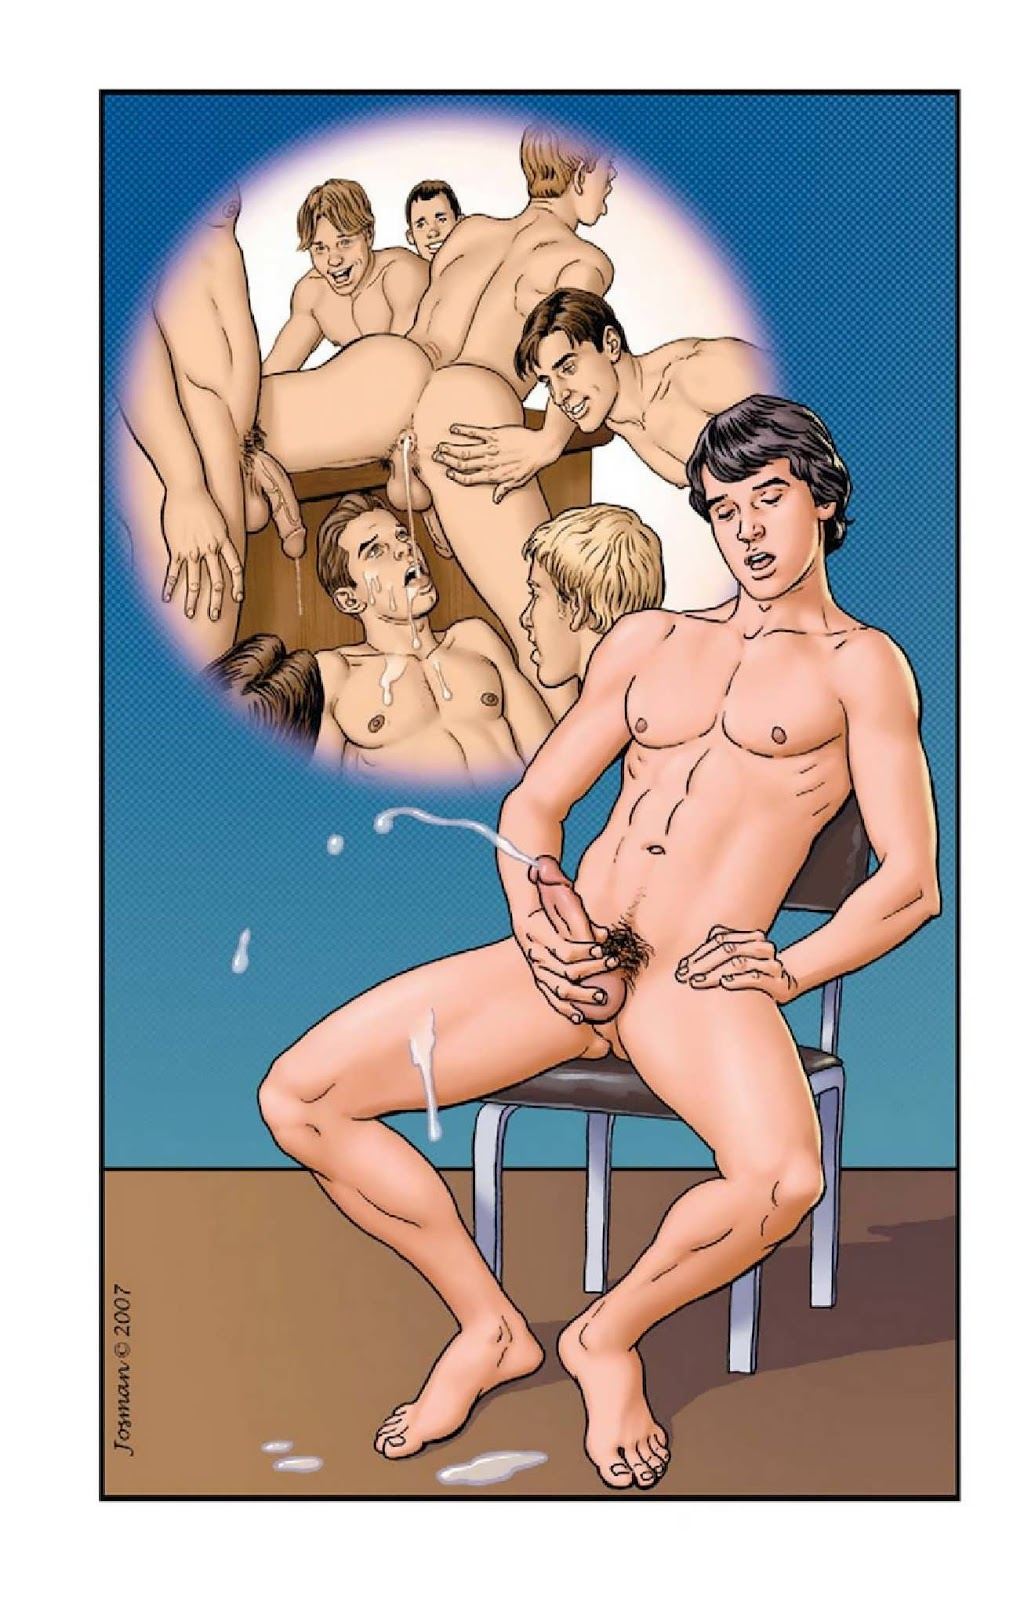 son gay porn cartoon dad